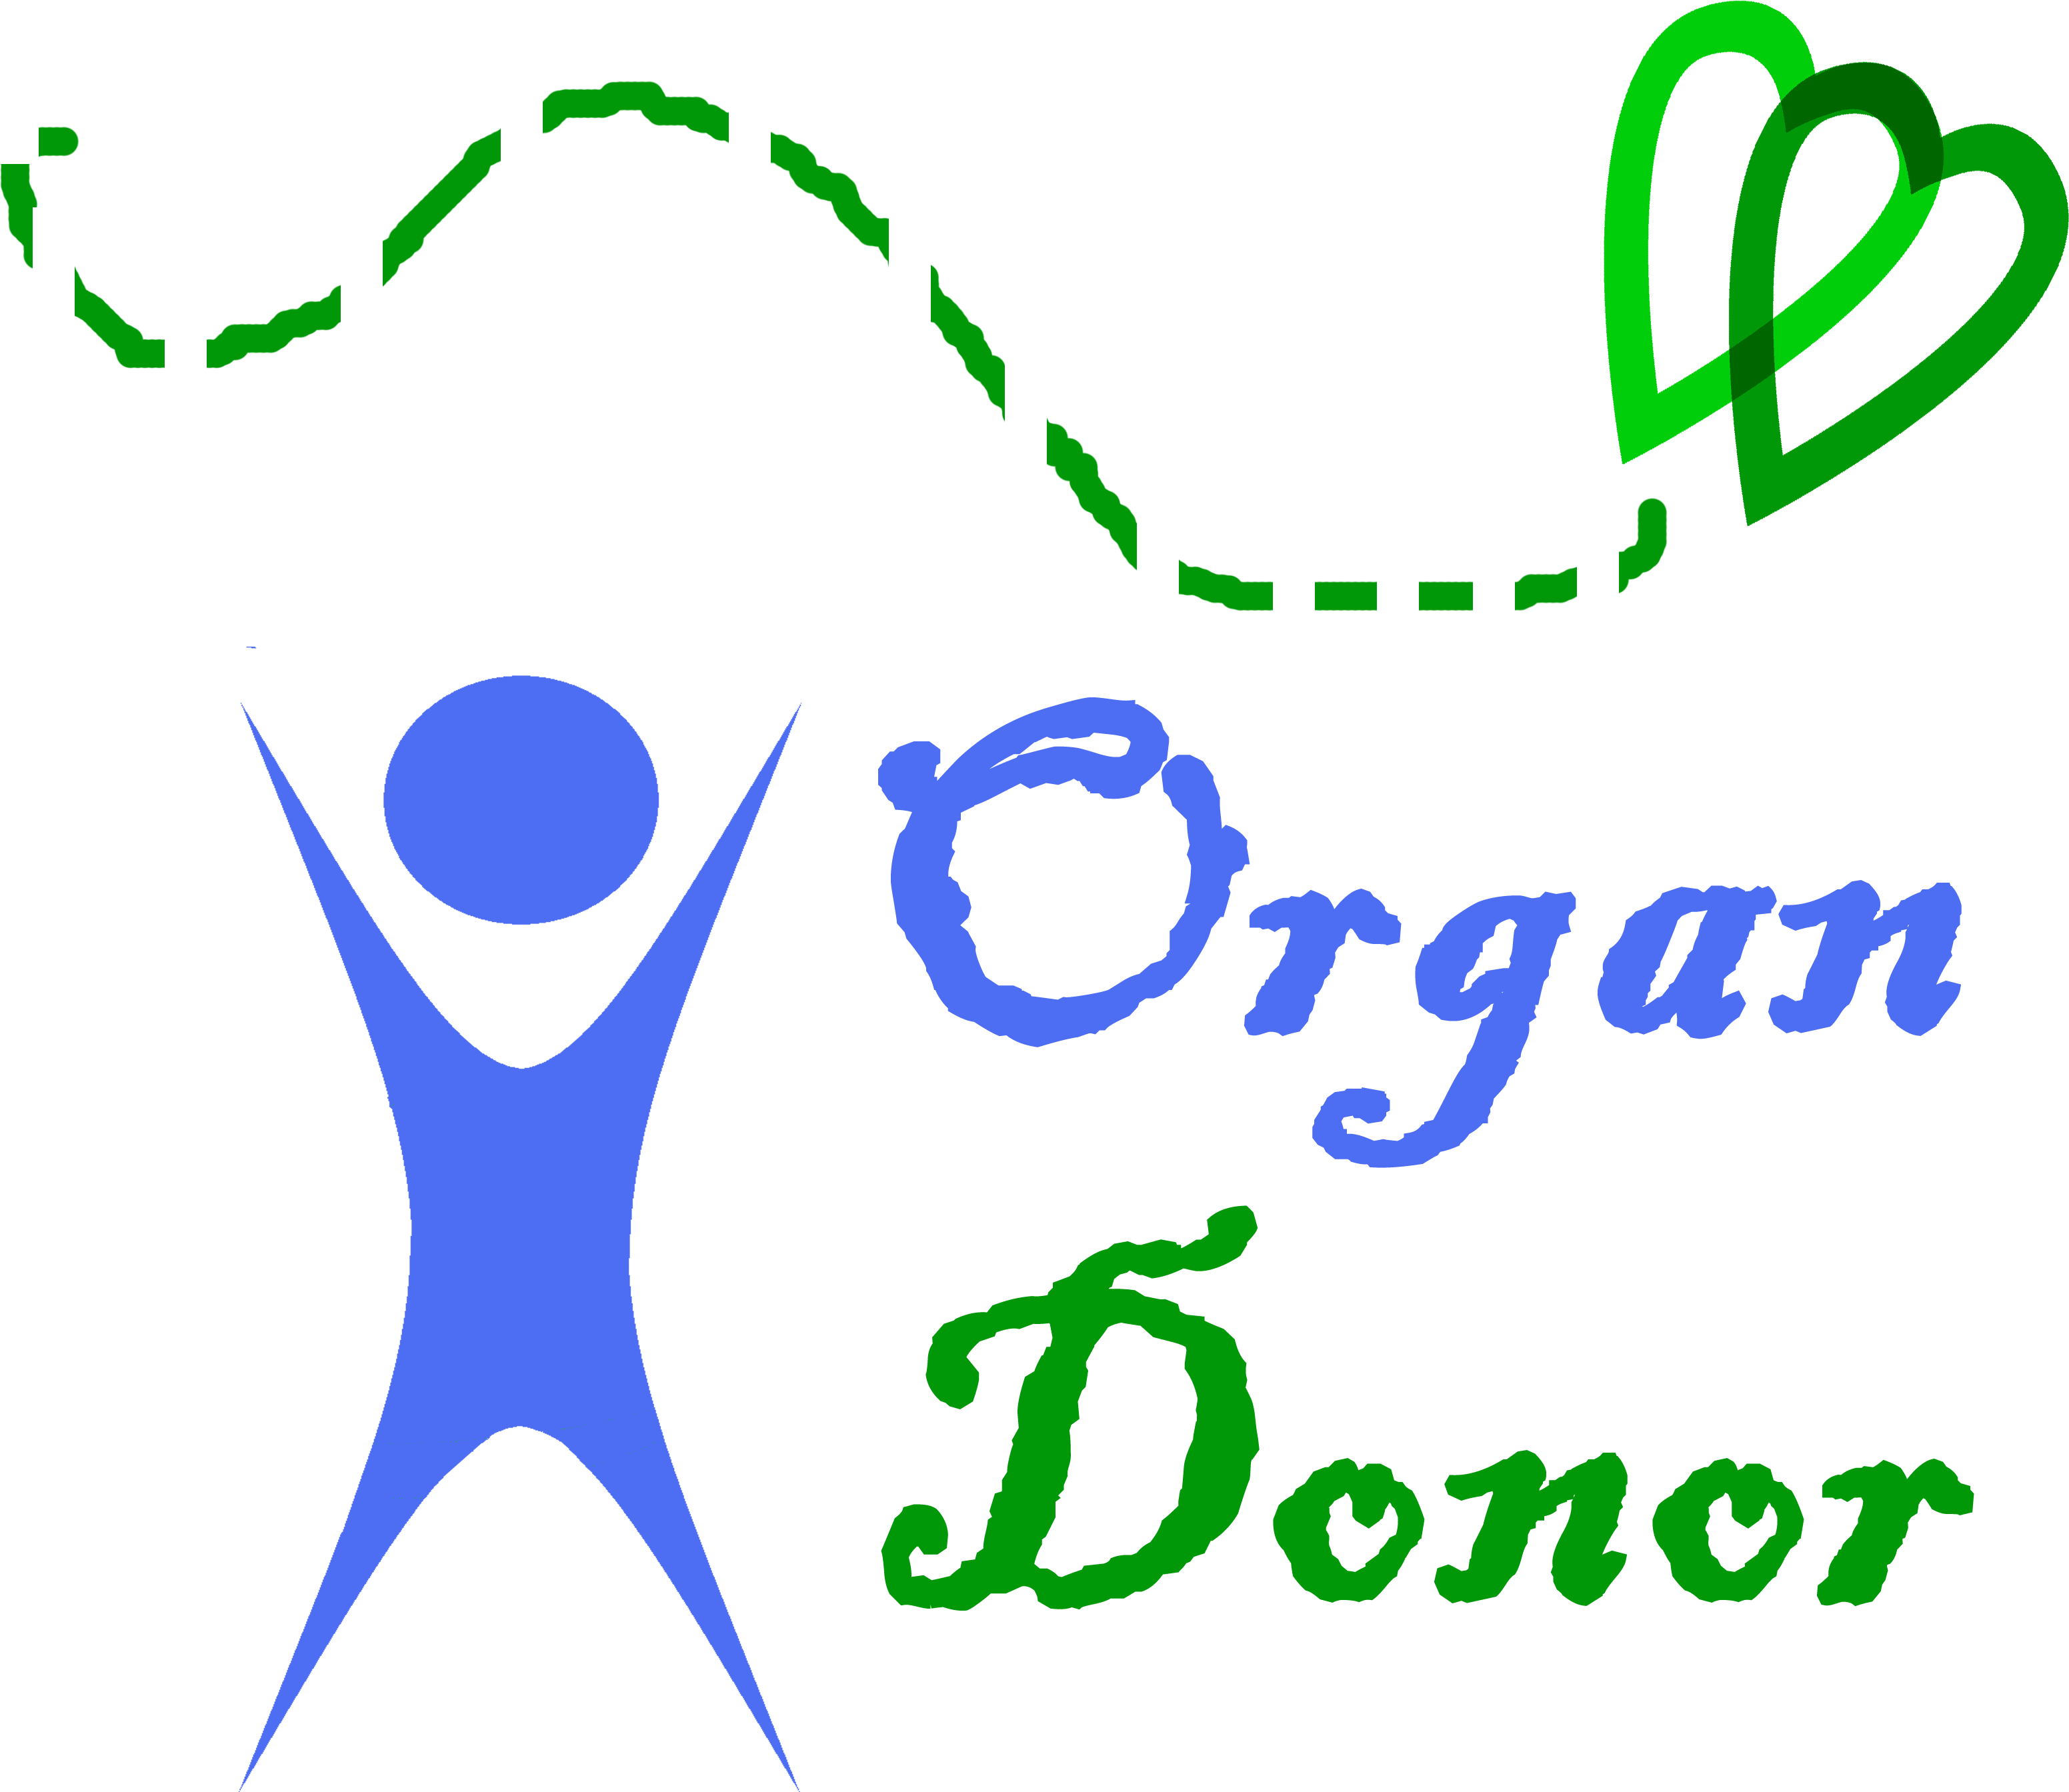 Organs clipart organ transplant Donation Ethics You  with